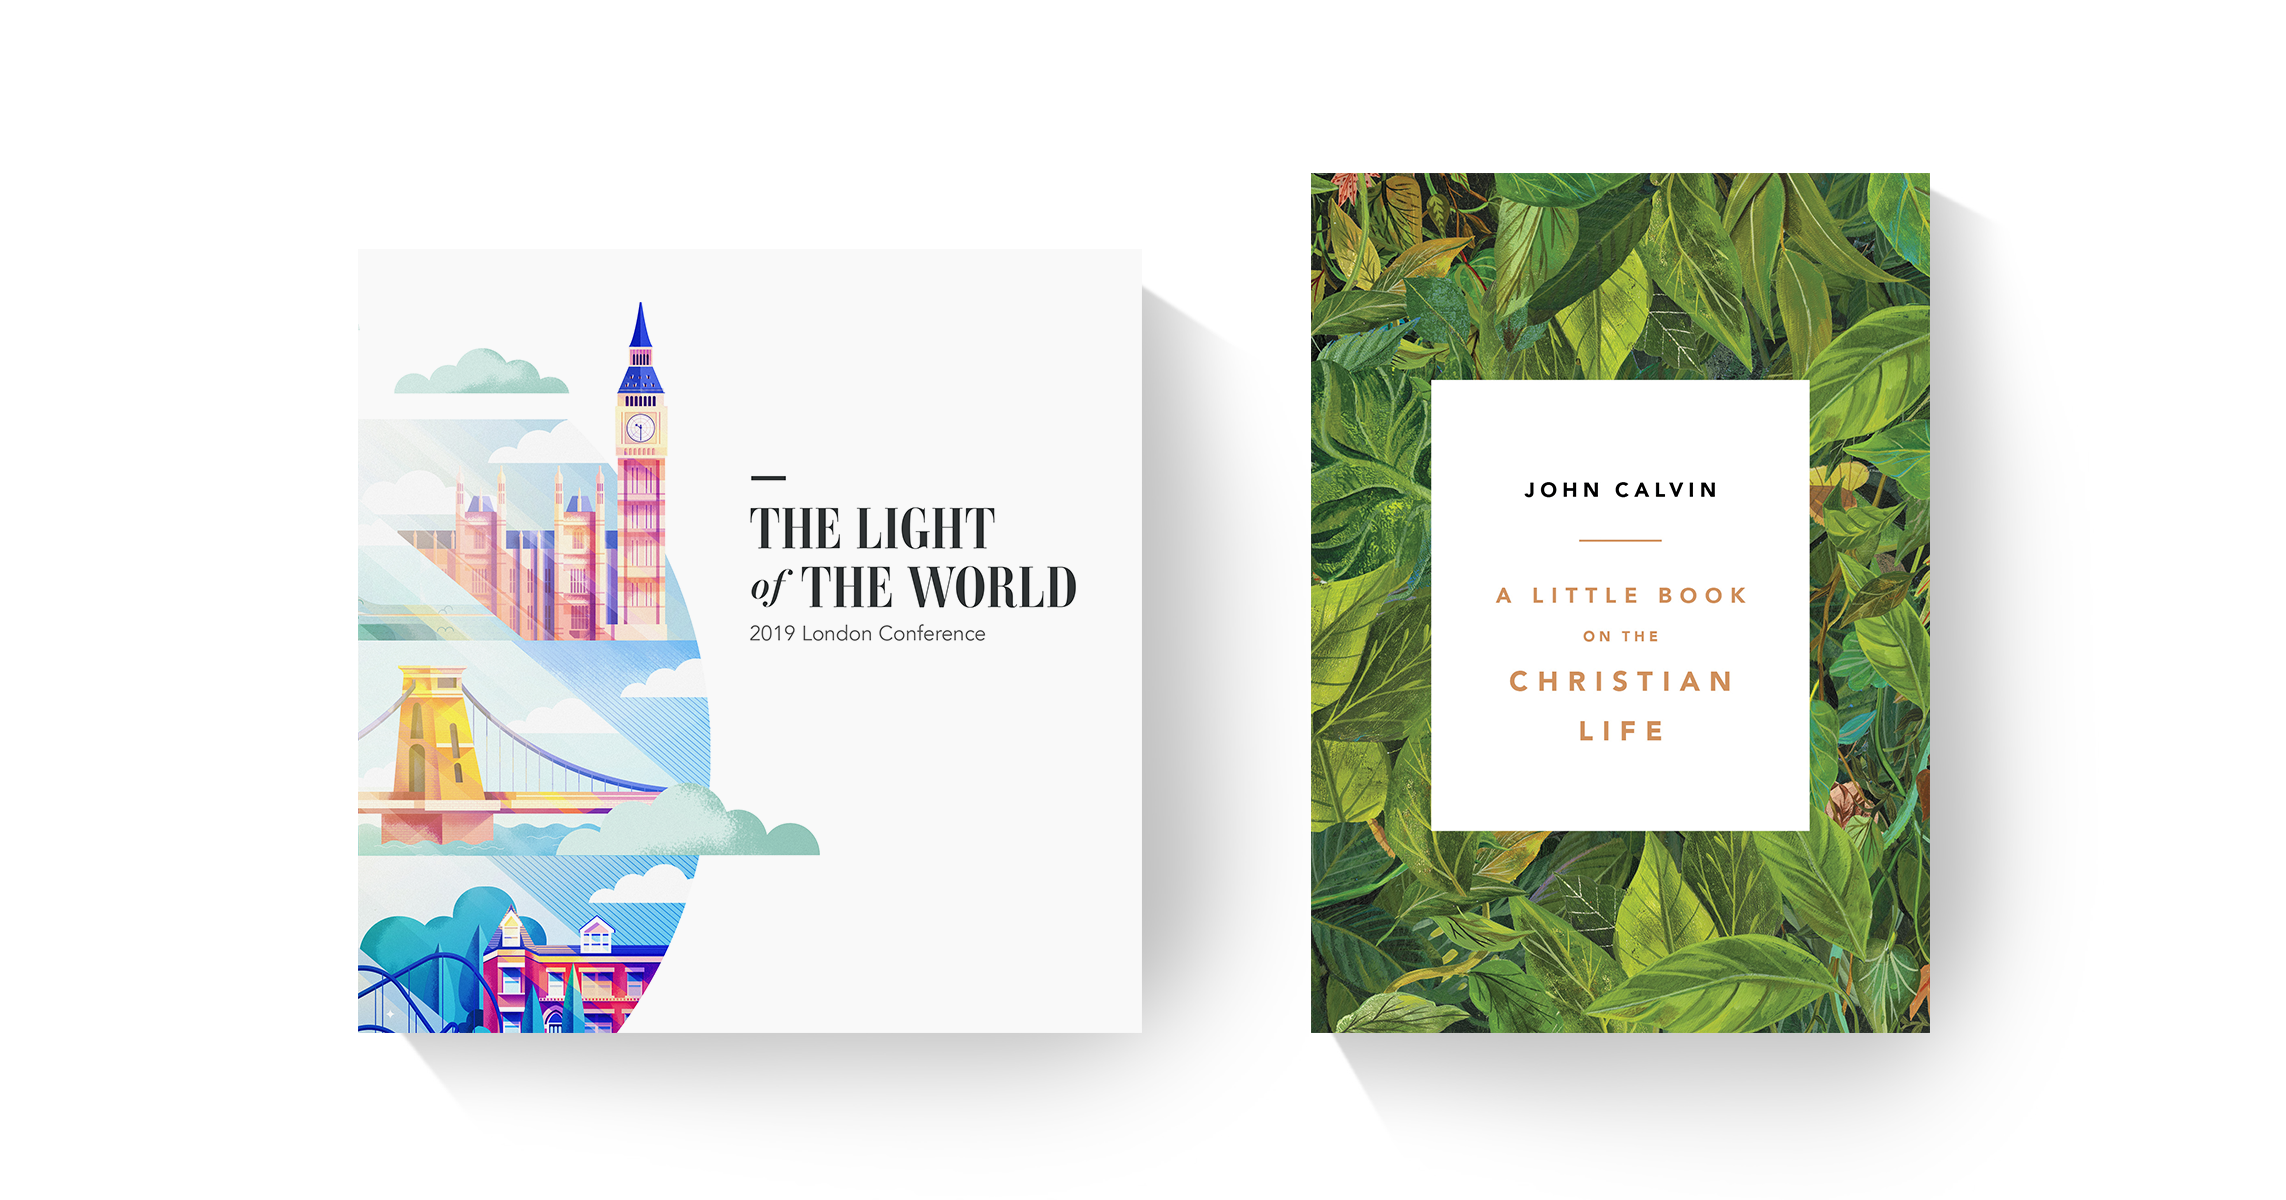 The Light of the World: 2019 London Conference